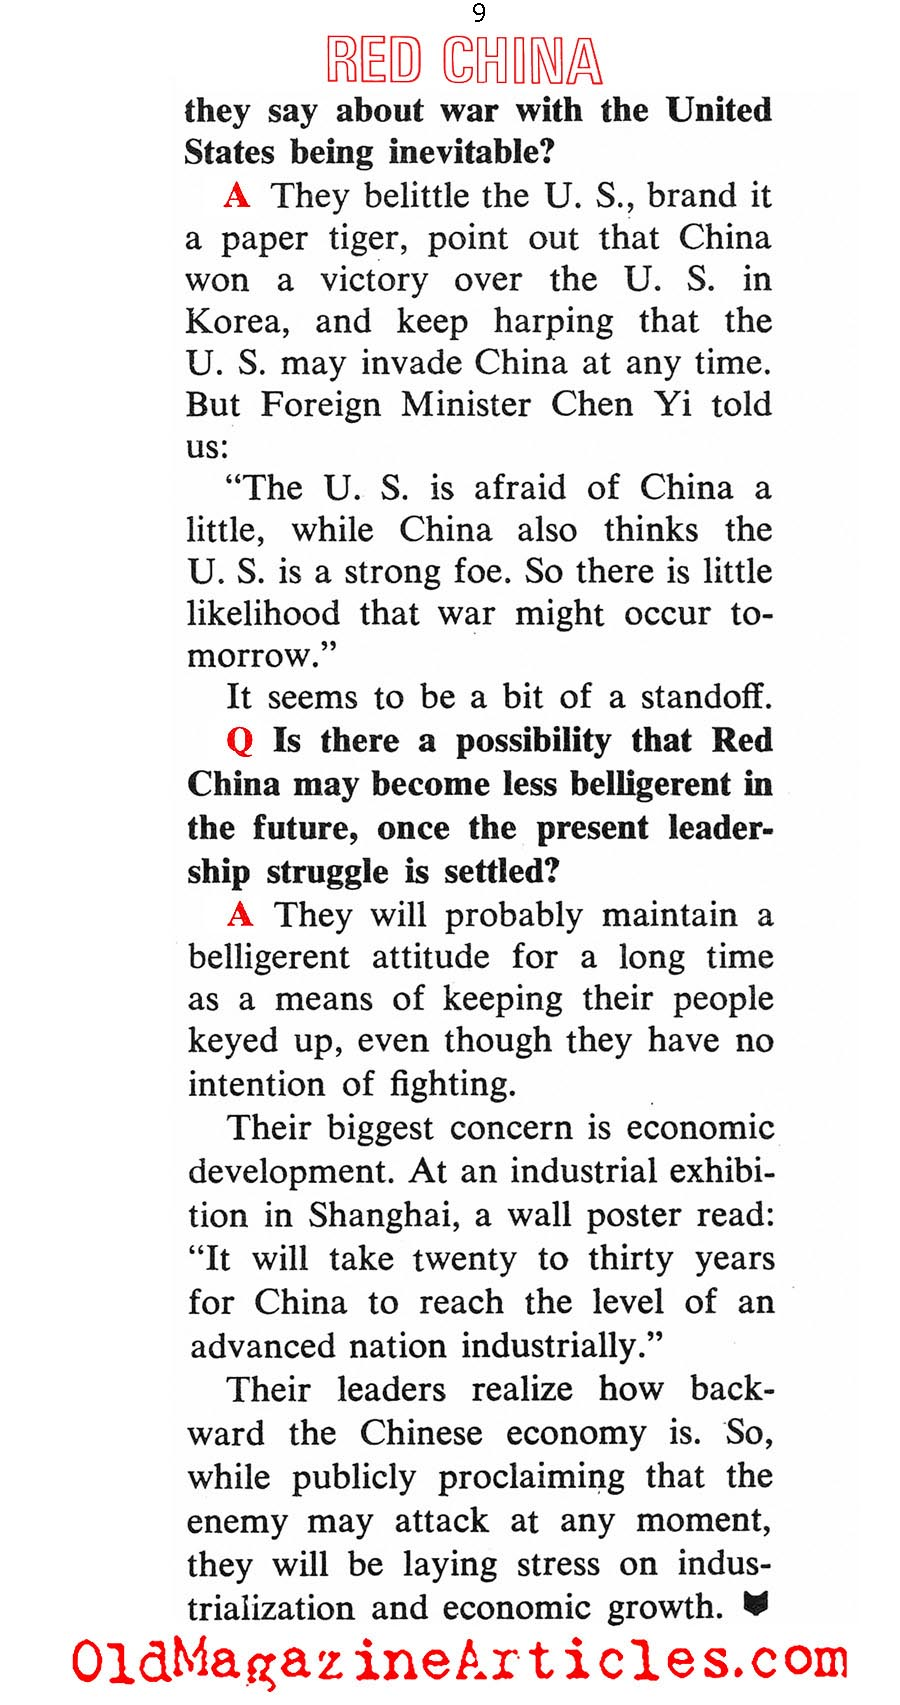 How Dangerous is Red China (Coronet Magazine, 1967)